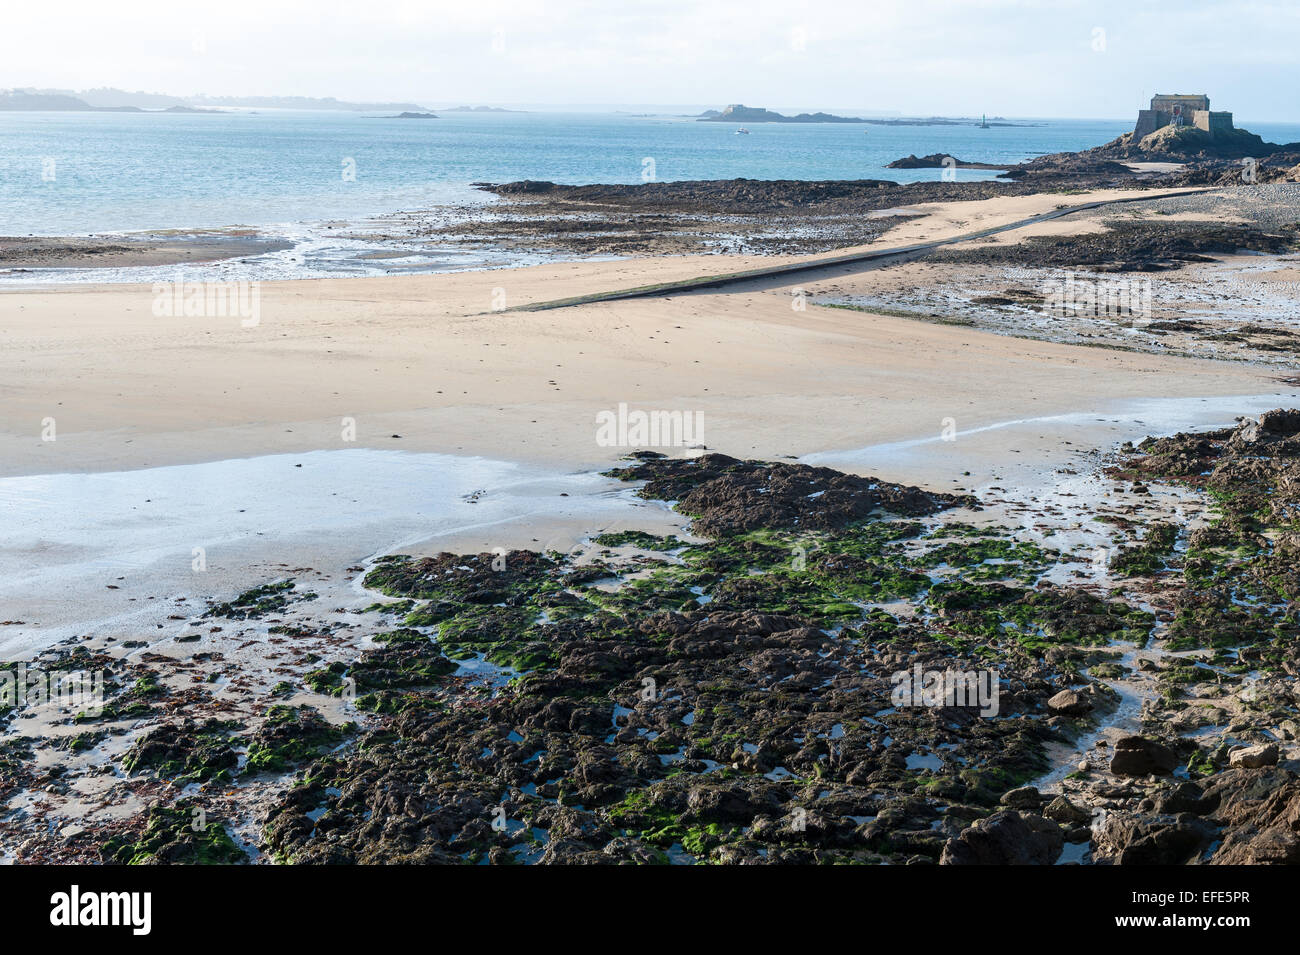 Fort National, Saint Malo, Brittany, France - Stock Image